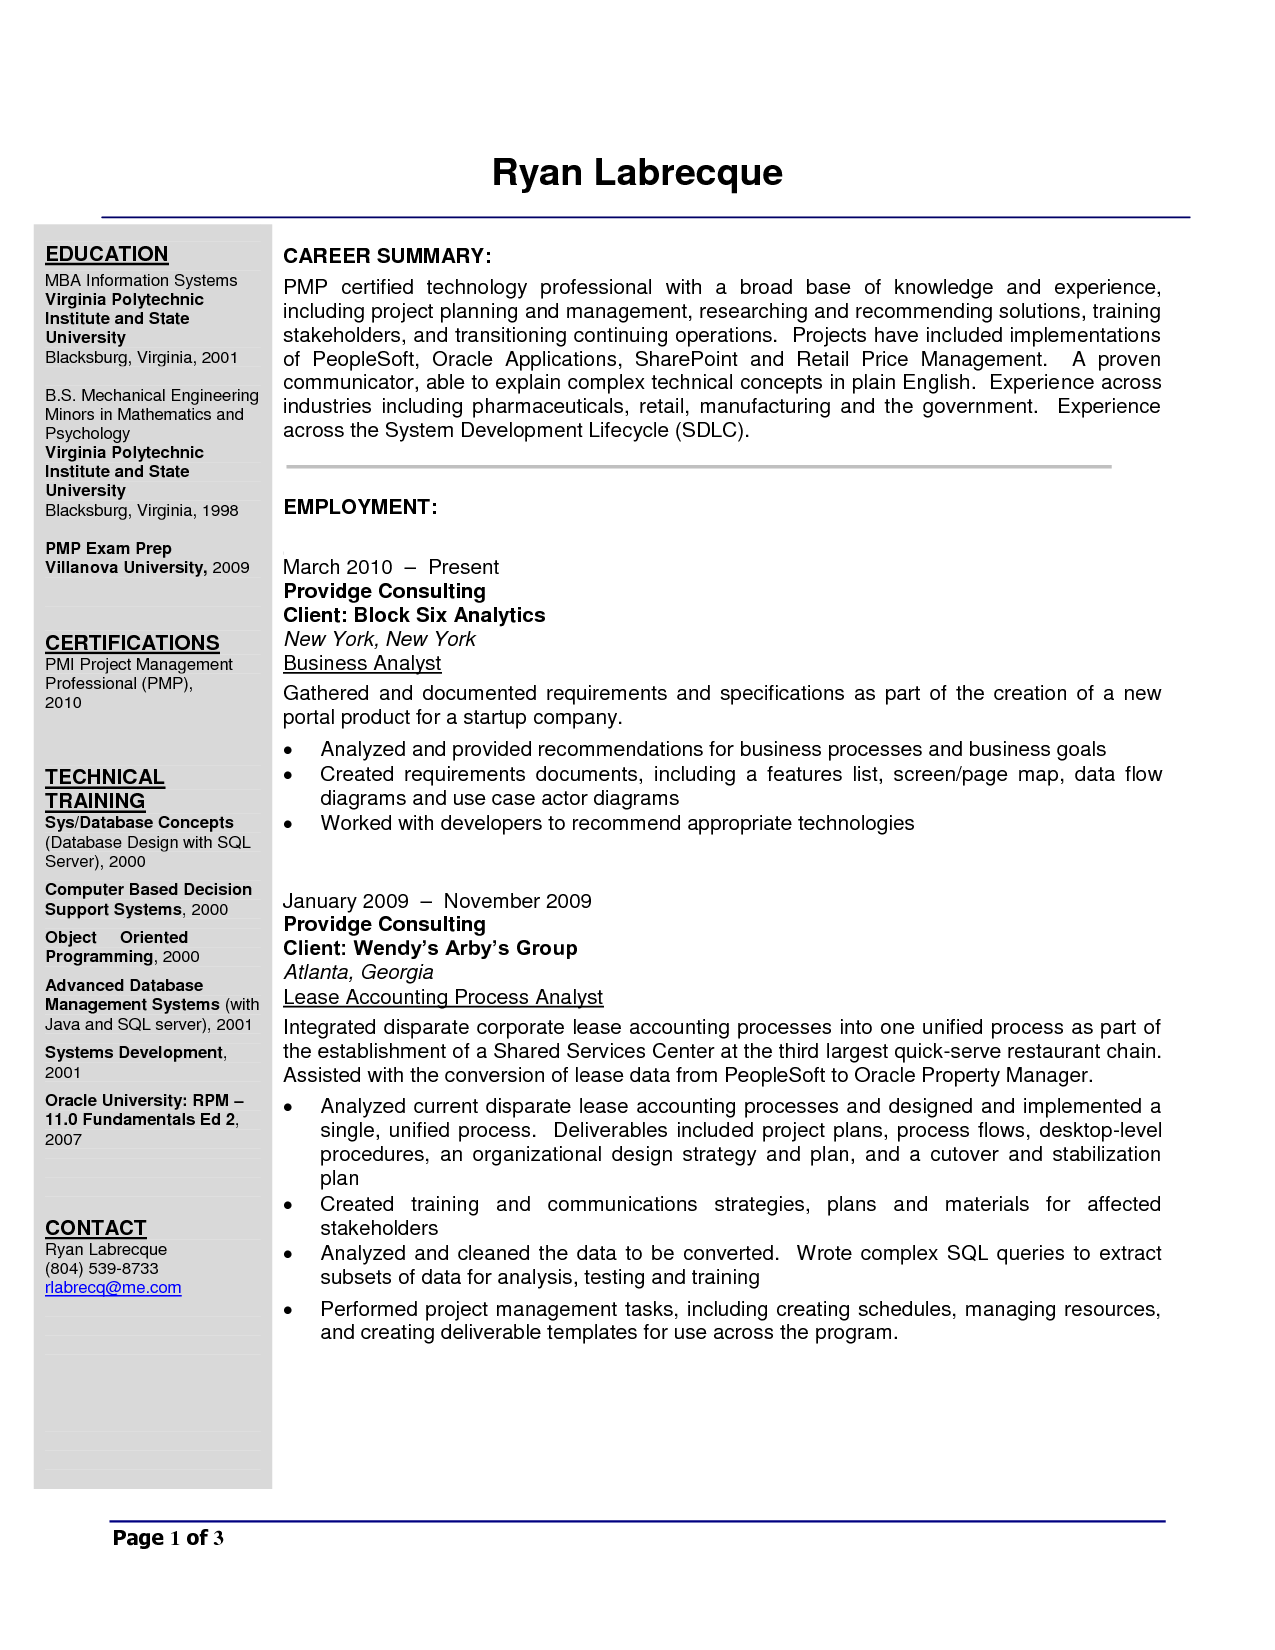 business analyst resumes, the best business analyst resume sample ...